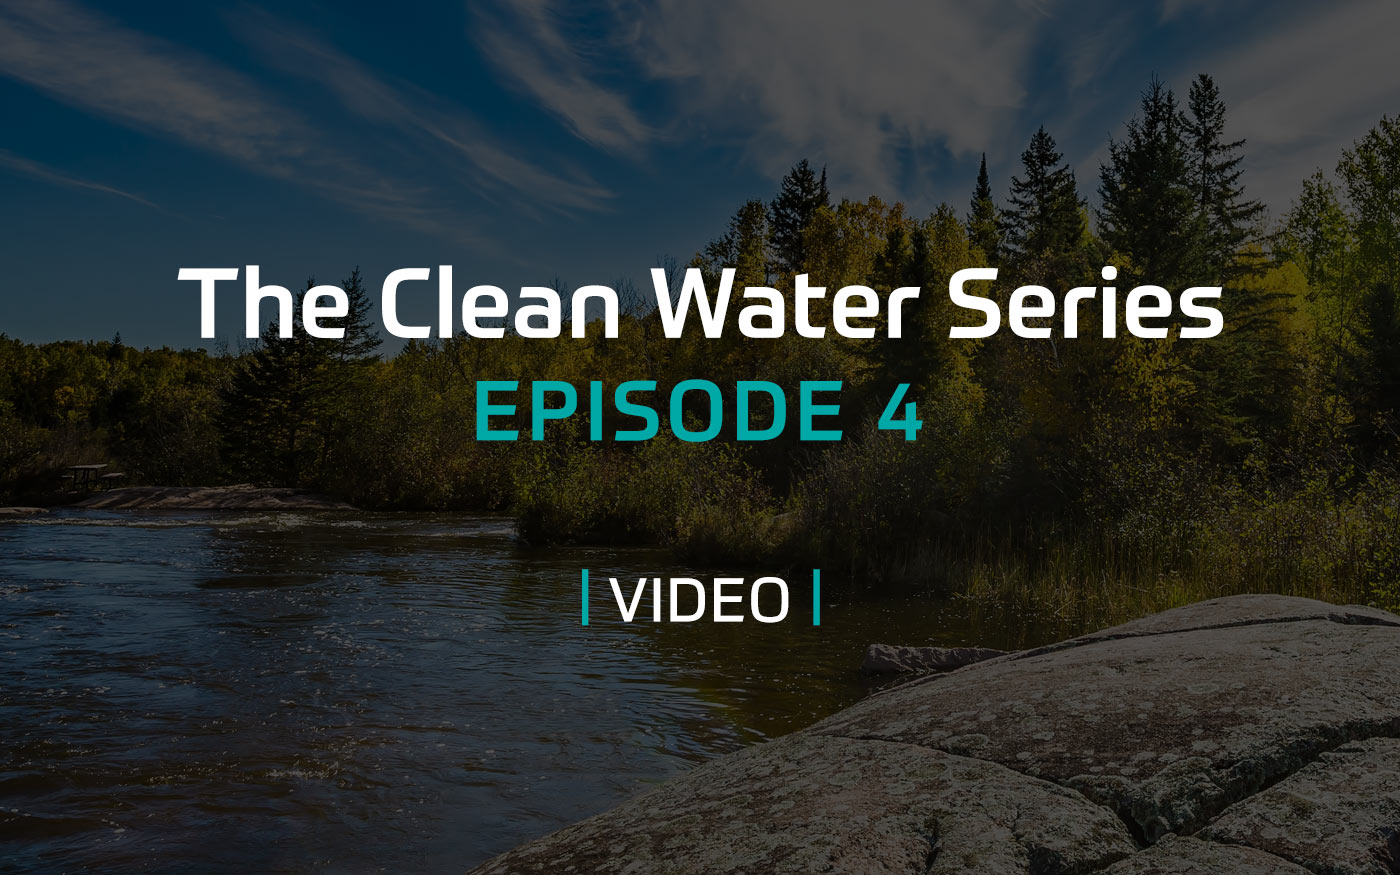 The Clean Water Series - Episode 4